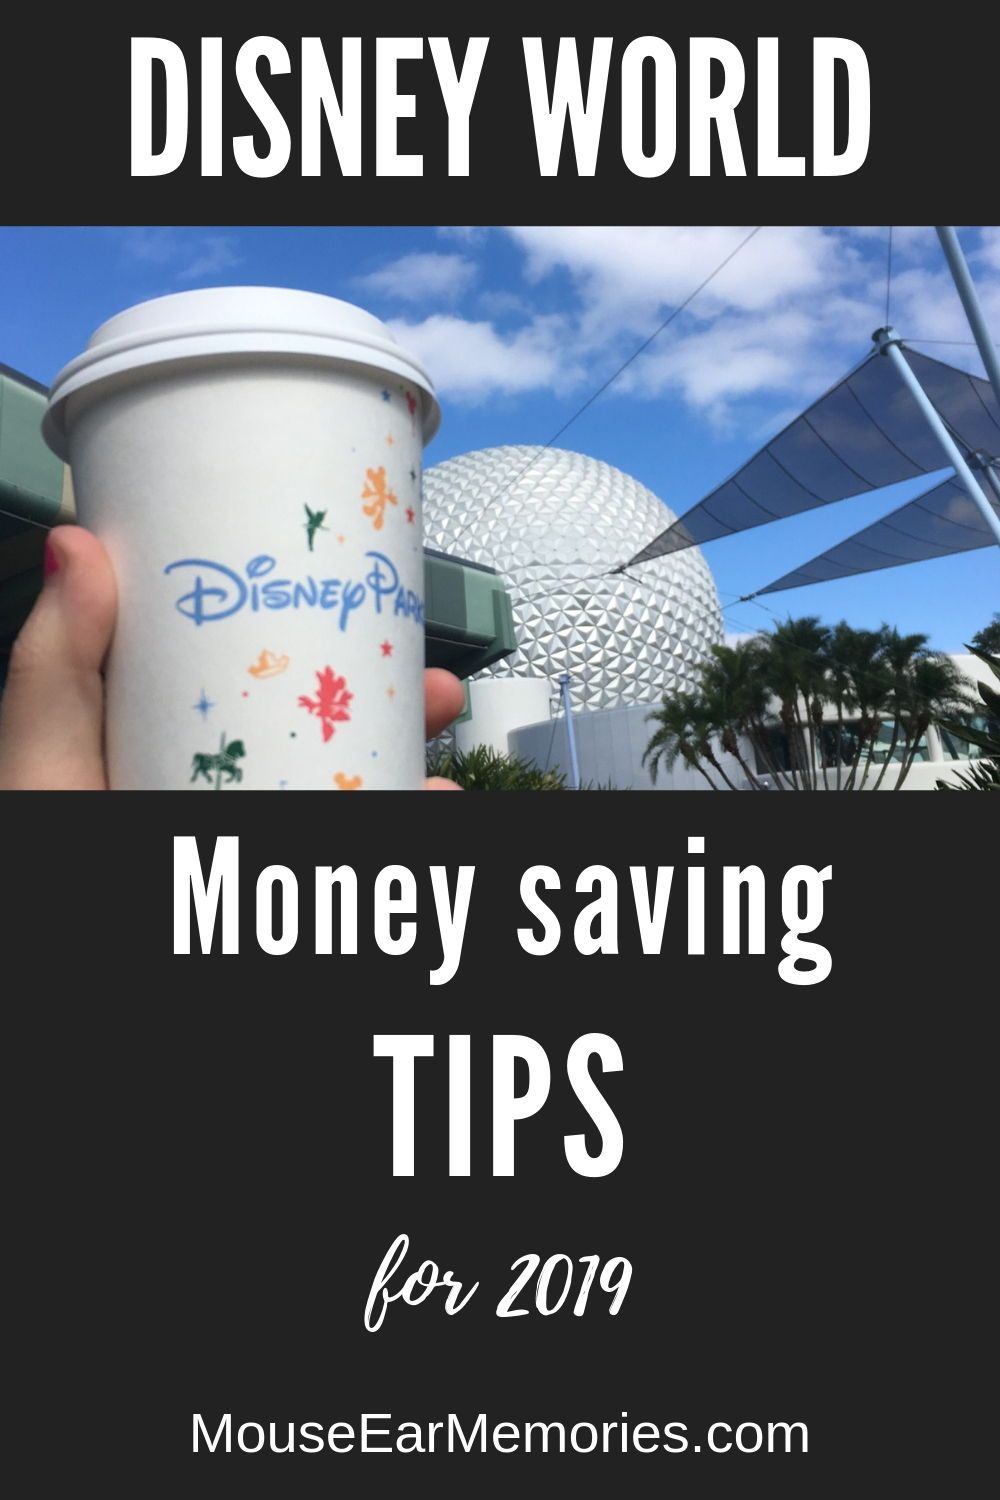 Money Saving Tips For Disney World 2020